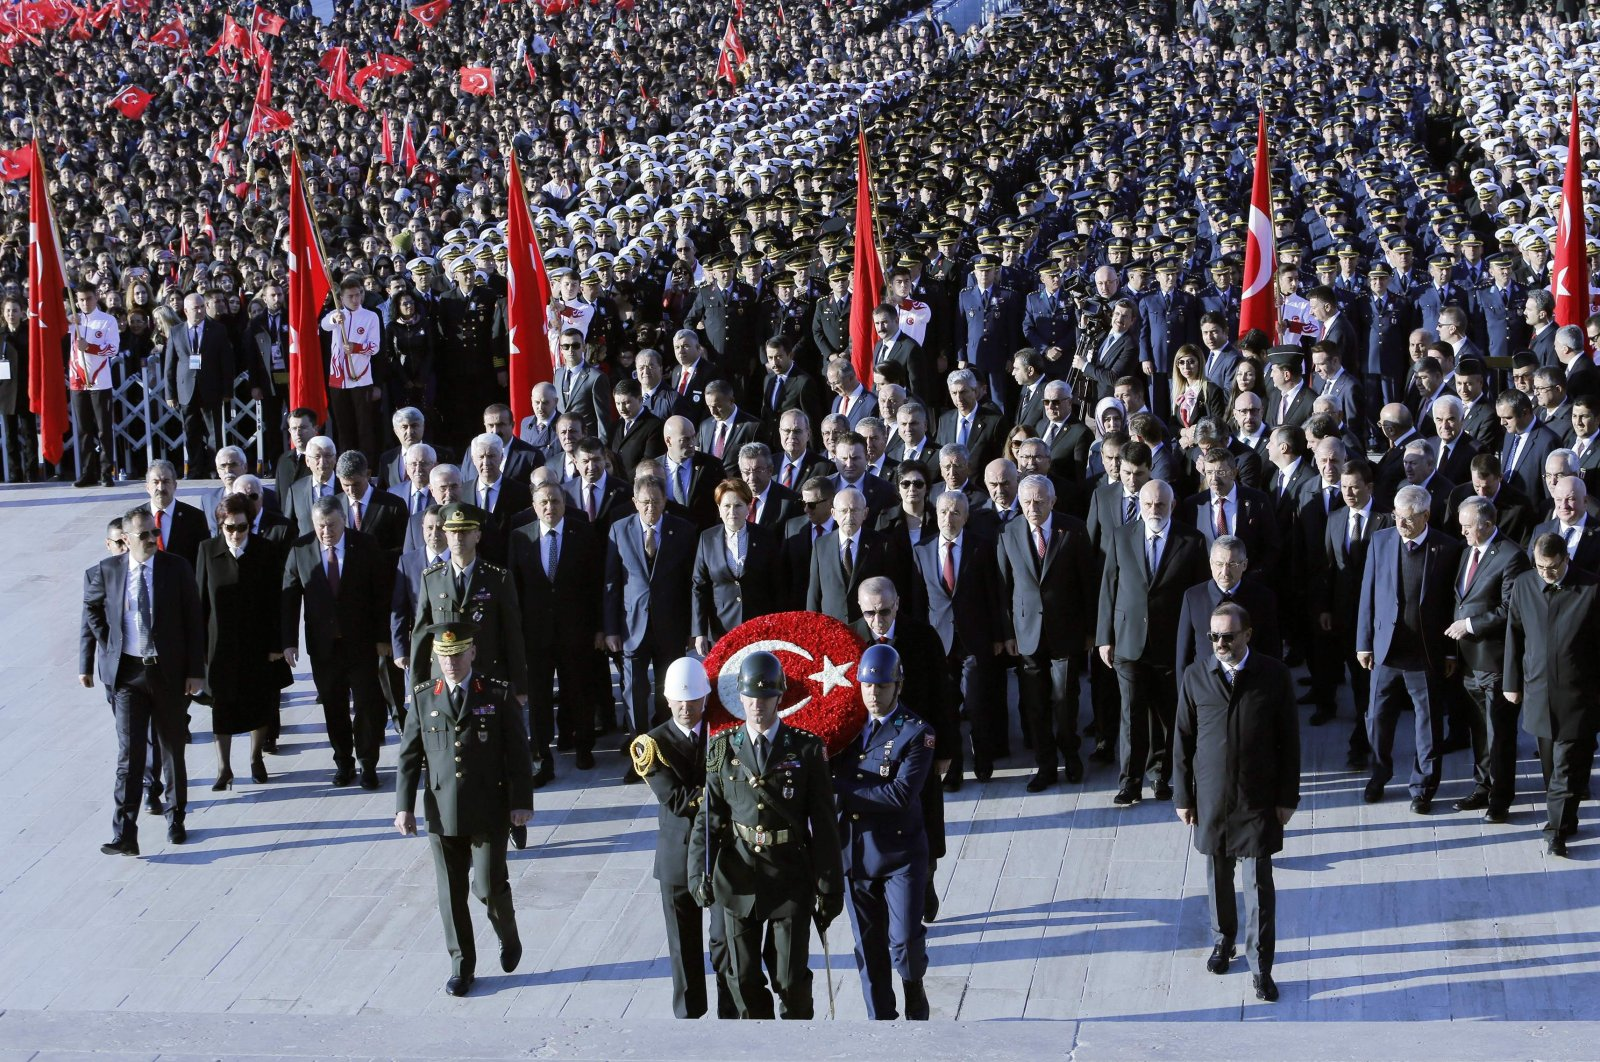 President Recep Tayyip Erdoğan, members of the government, opposition leaders and other officials attend a ceremony commemorating the 81st anniversary of the death of Turkey's founder Mustafa Kemal Atatürk, at his mausoleum in capital Ankara, Nov. 10, 2019. (AFP Photo)